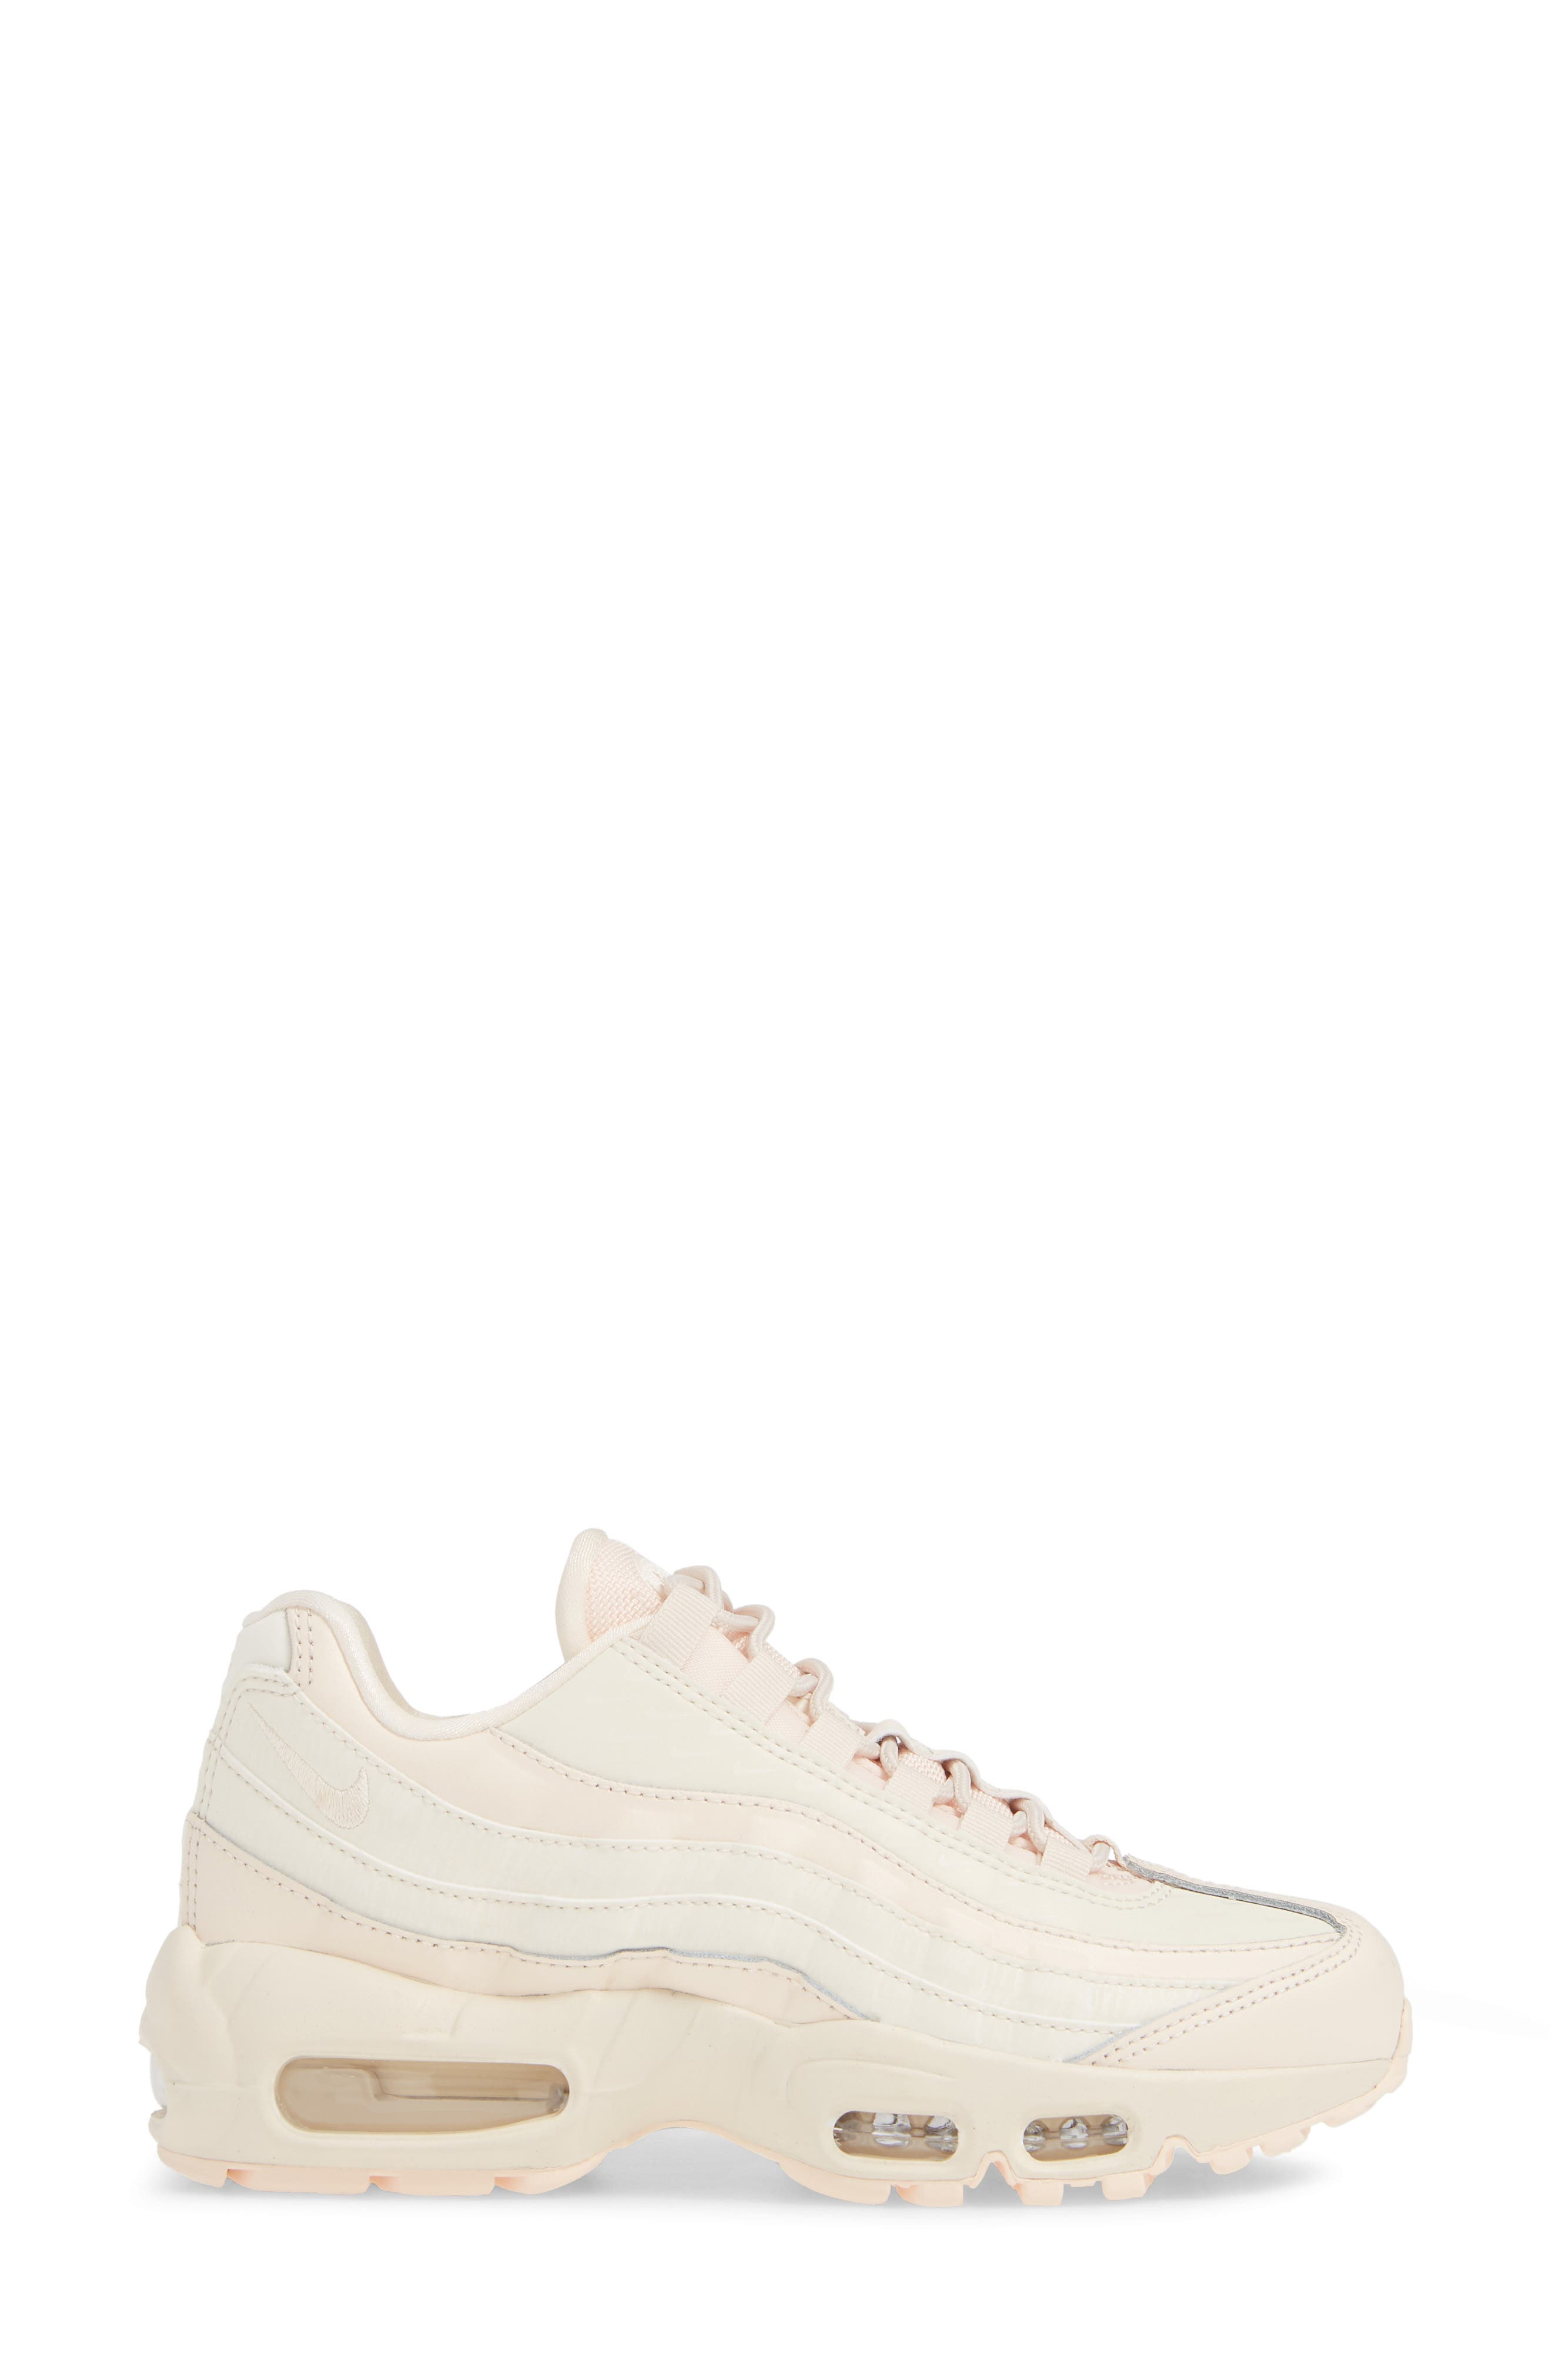 Air Max 95 LX Shoe,                             Alternate thumbnail 3, color,                             GUAVA ICE/ GUAVA ICE